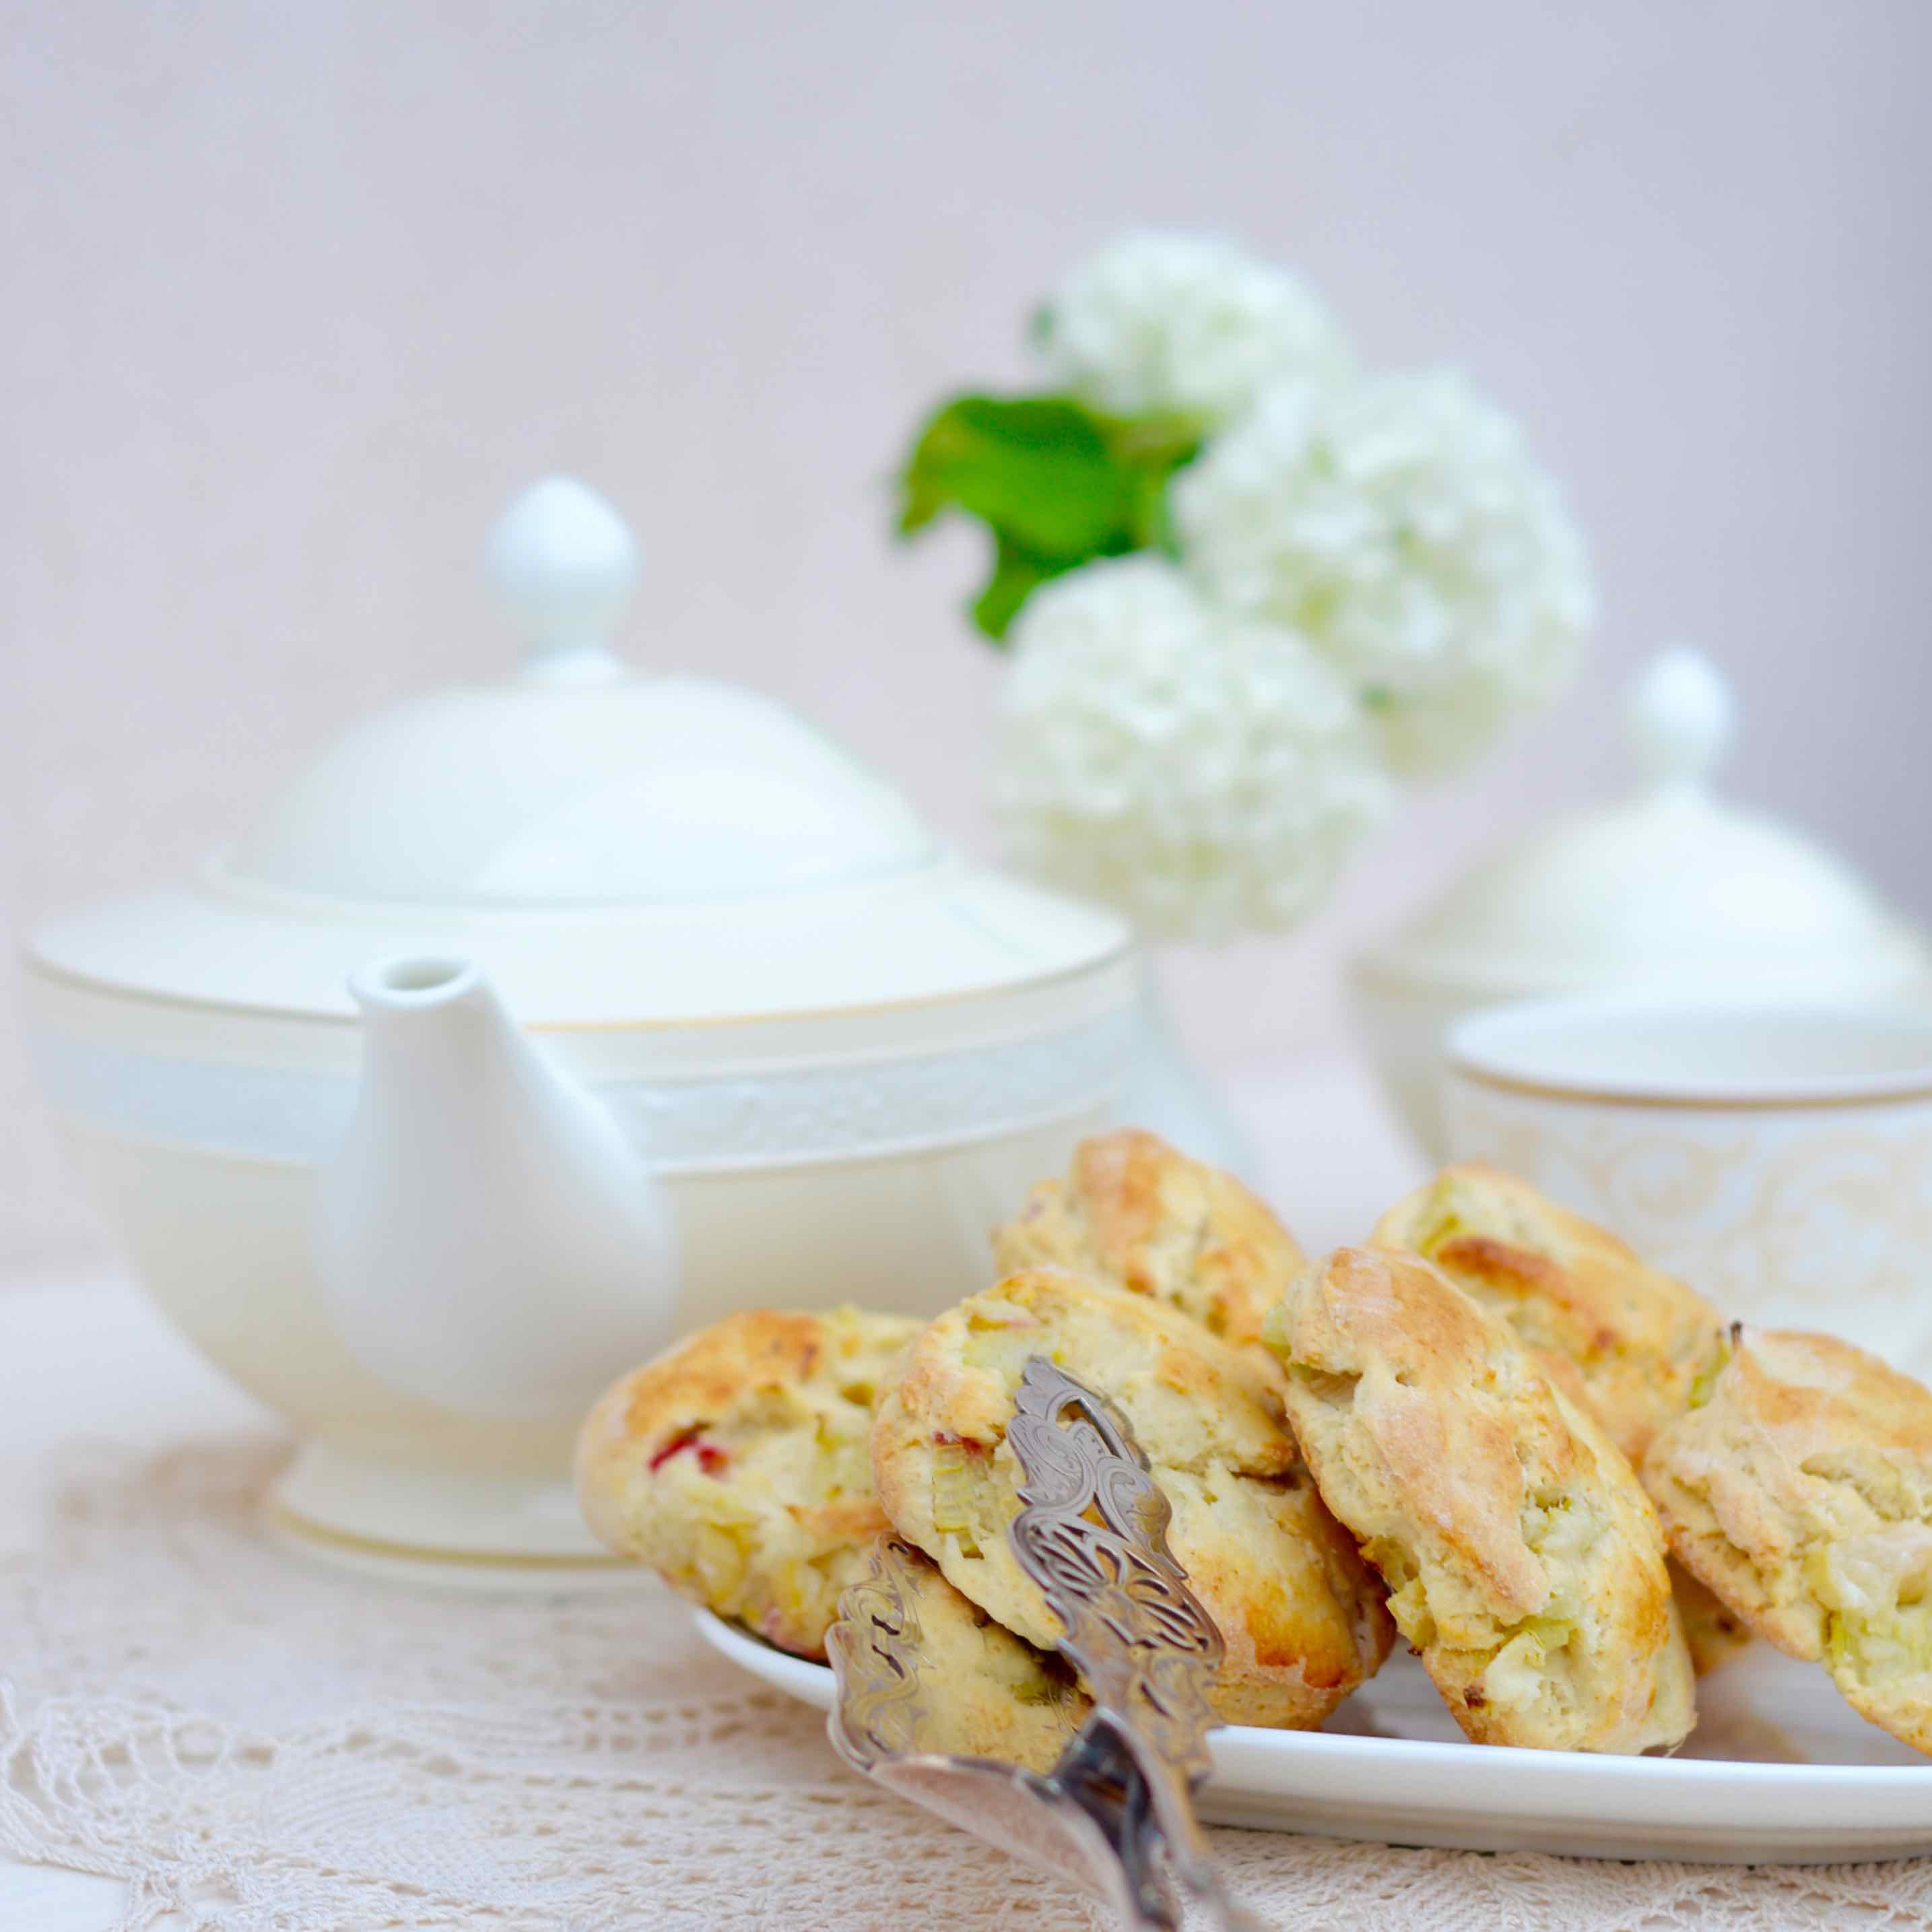 Very british: Scones mit Rhabarber